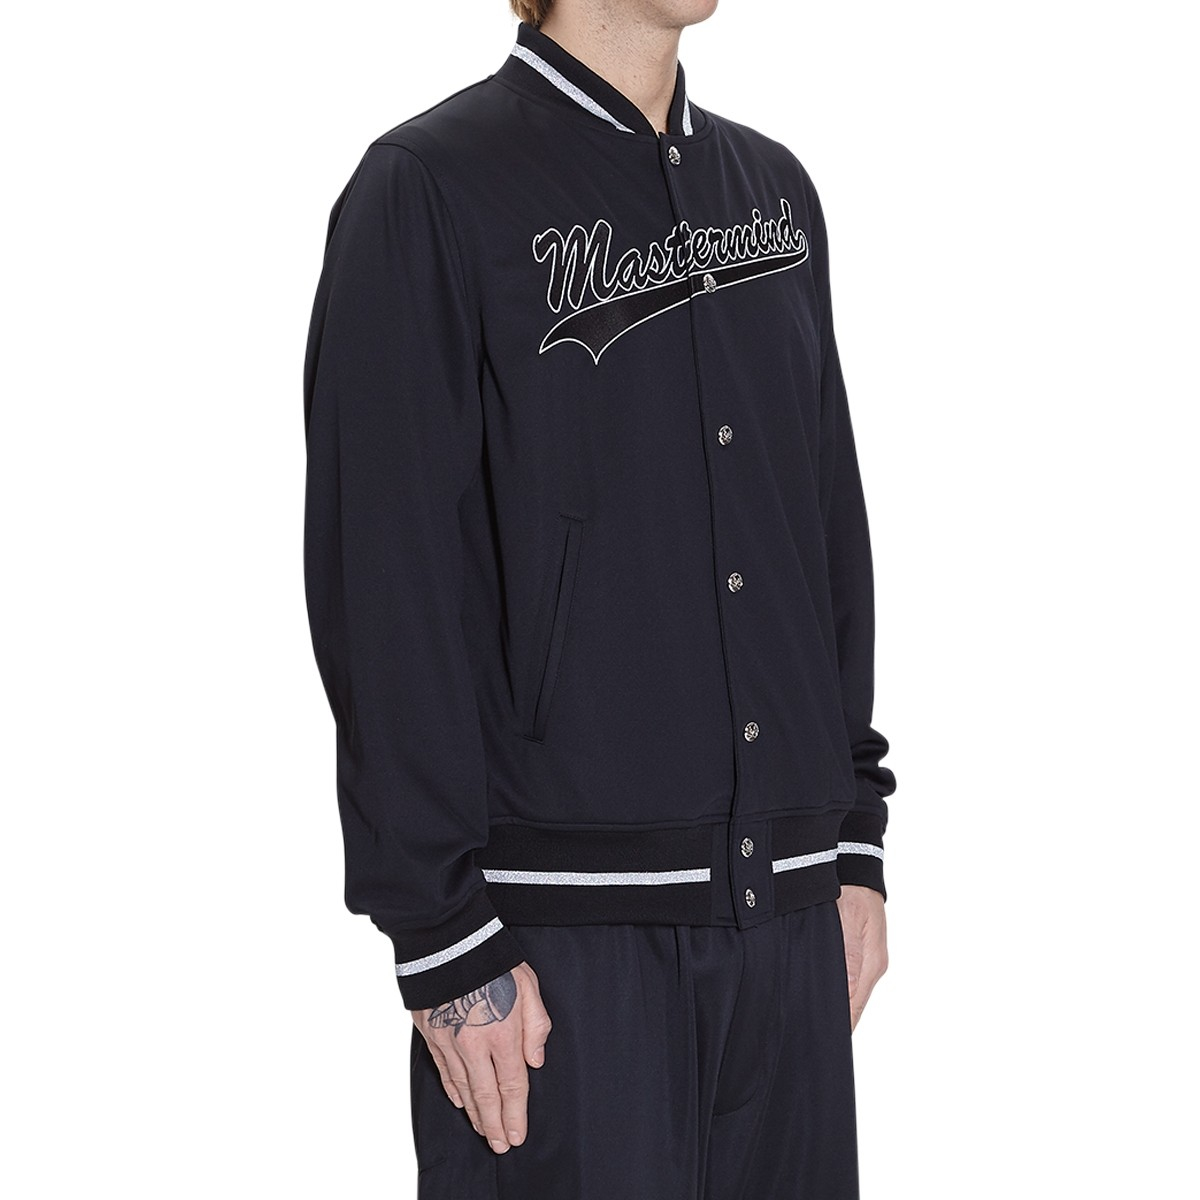 Mastermind japan clothing online